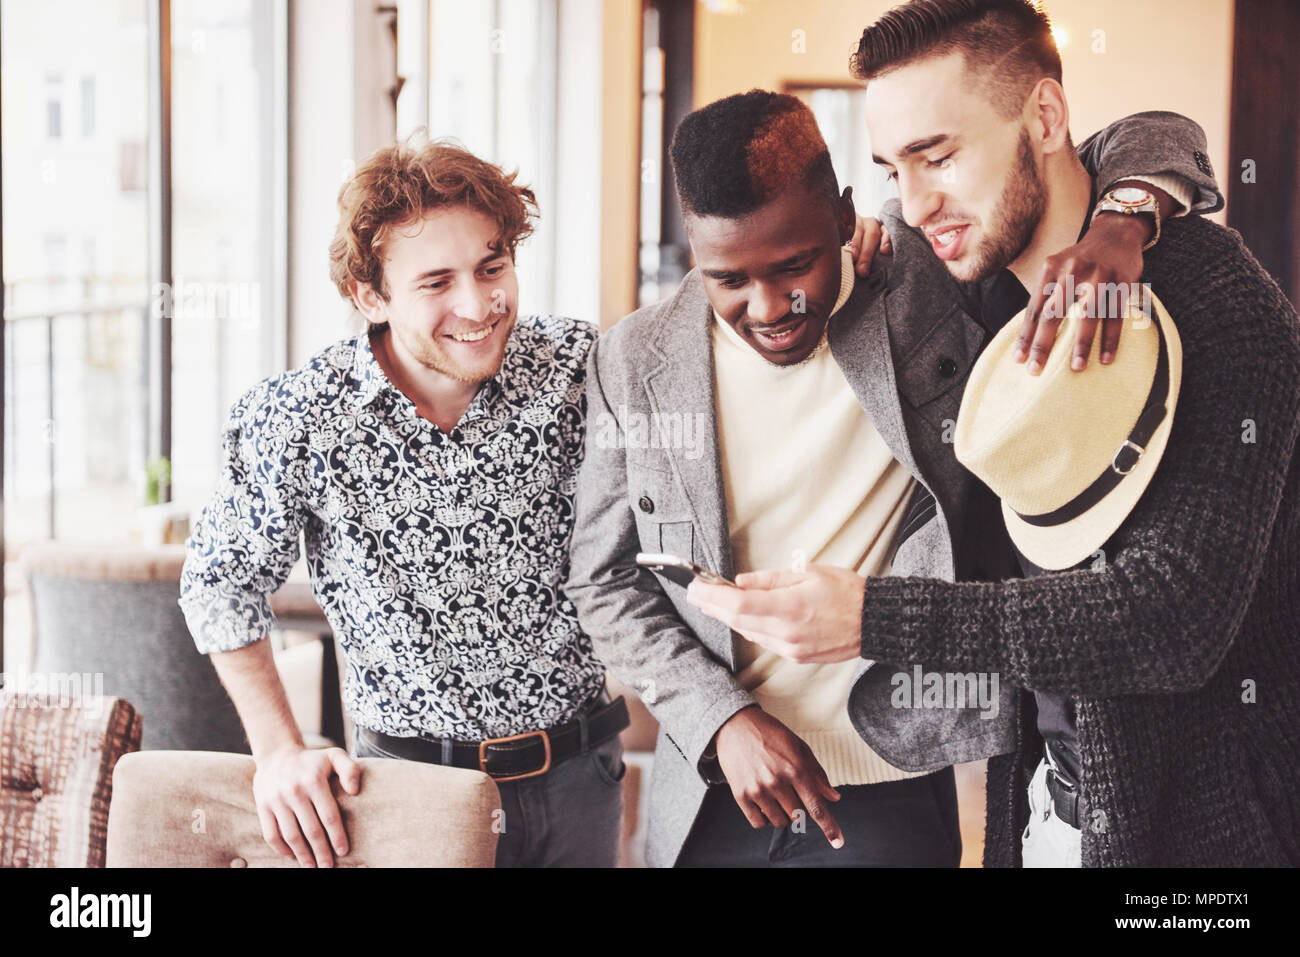 Cheerful old friends communicate with each other and phone watch in pub. Concept of entertainment and lifestyle. Wifi connected people in bar table meeting - Stock Image